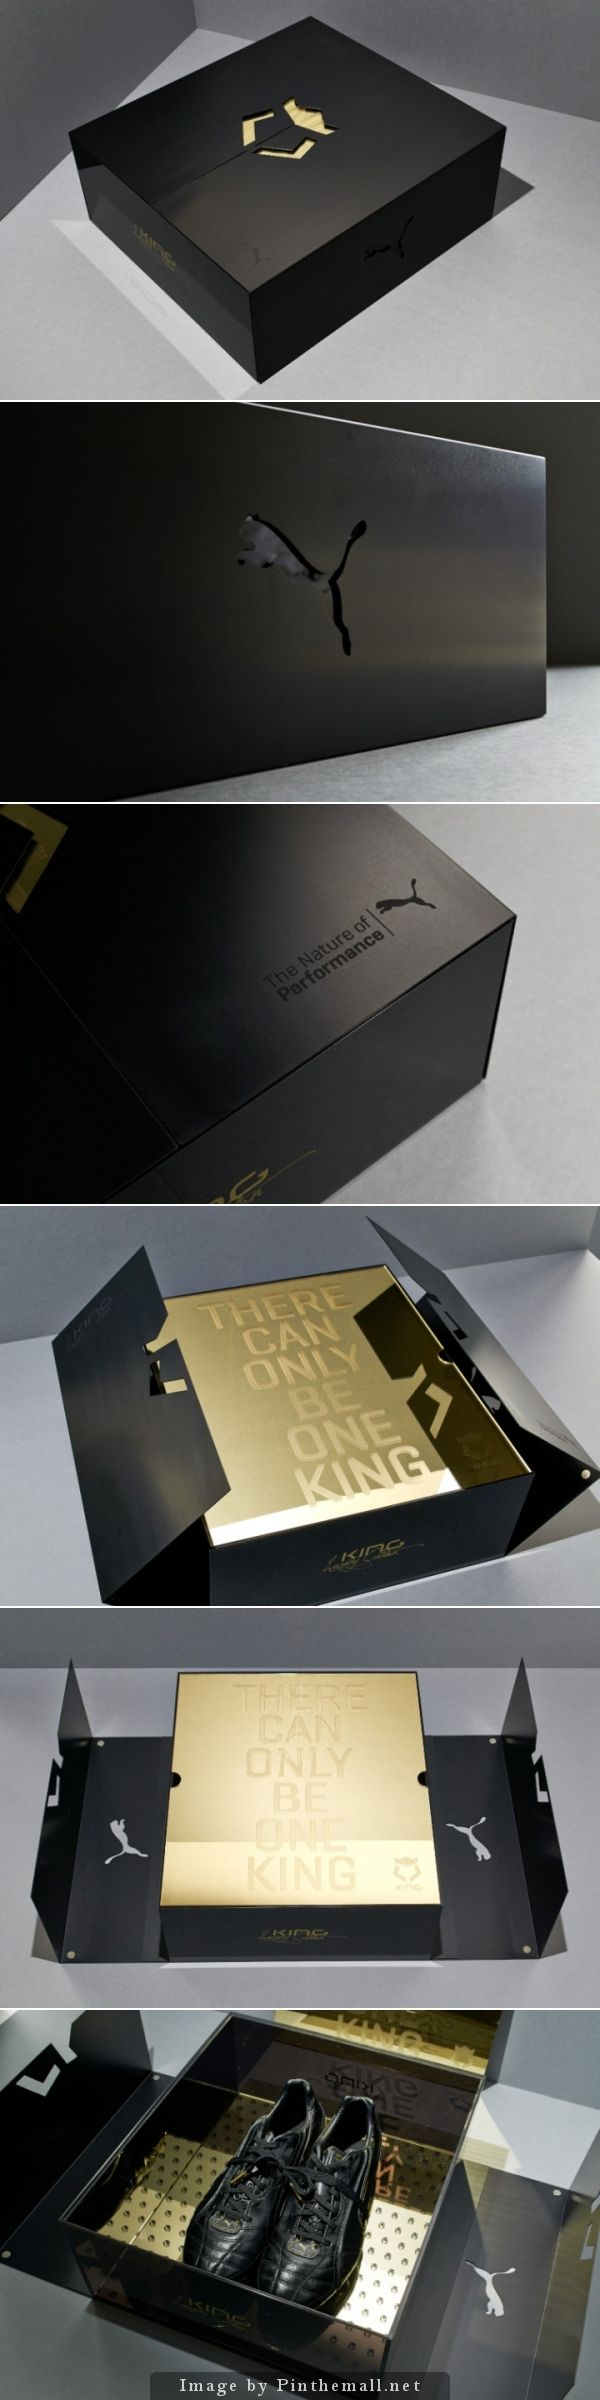 Limited Edition packaging for Puma. There can be only one king.